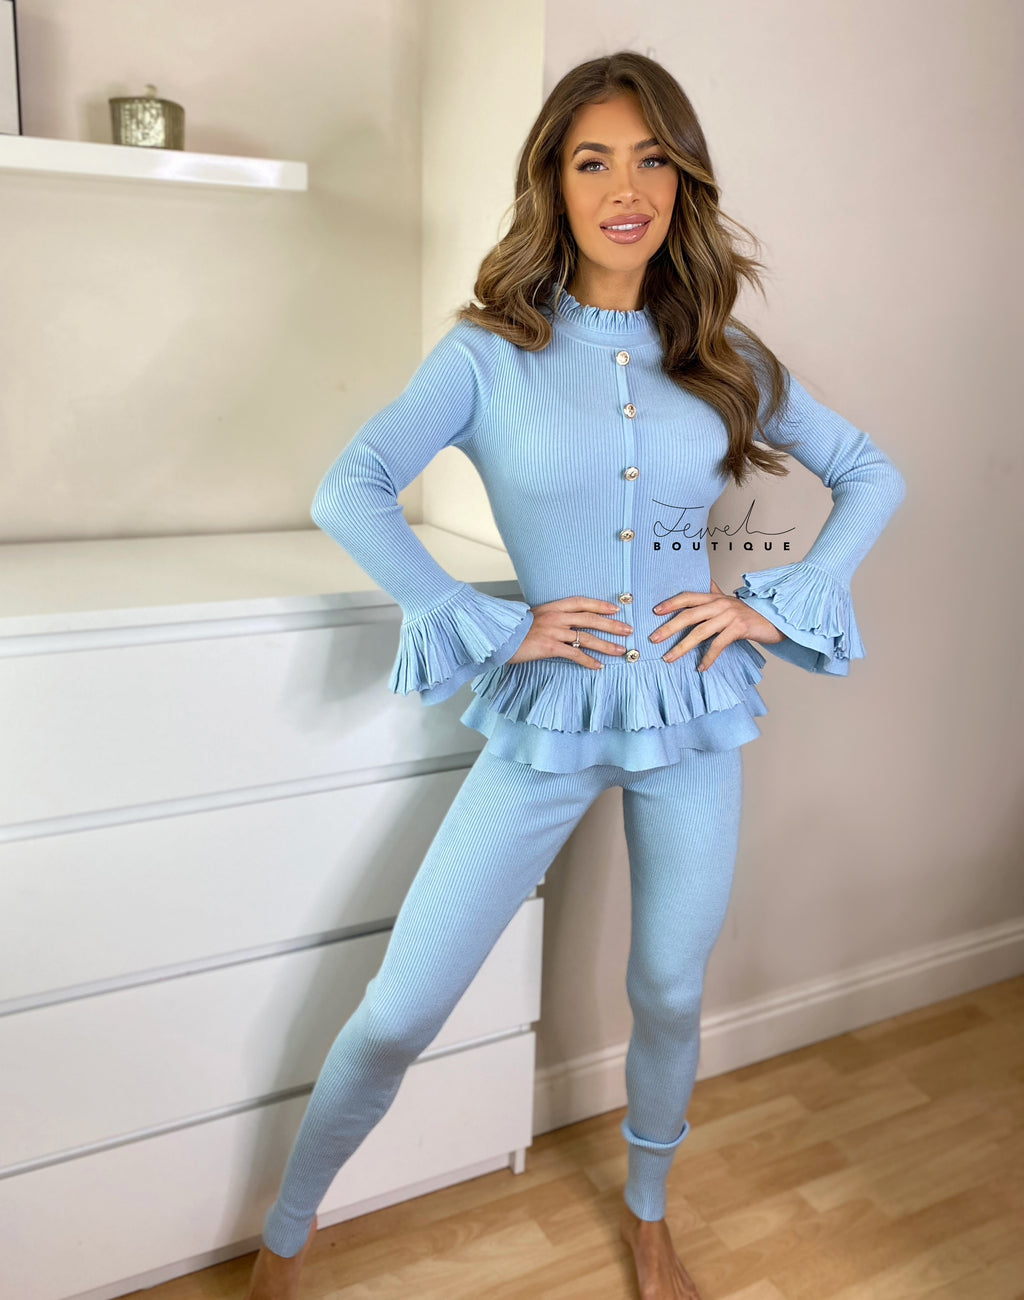 Women's sky blue loungewear set with frill and gold button detail